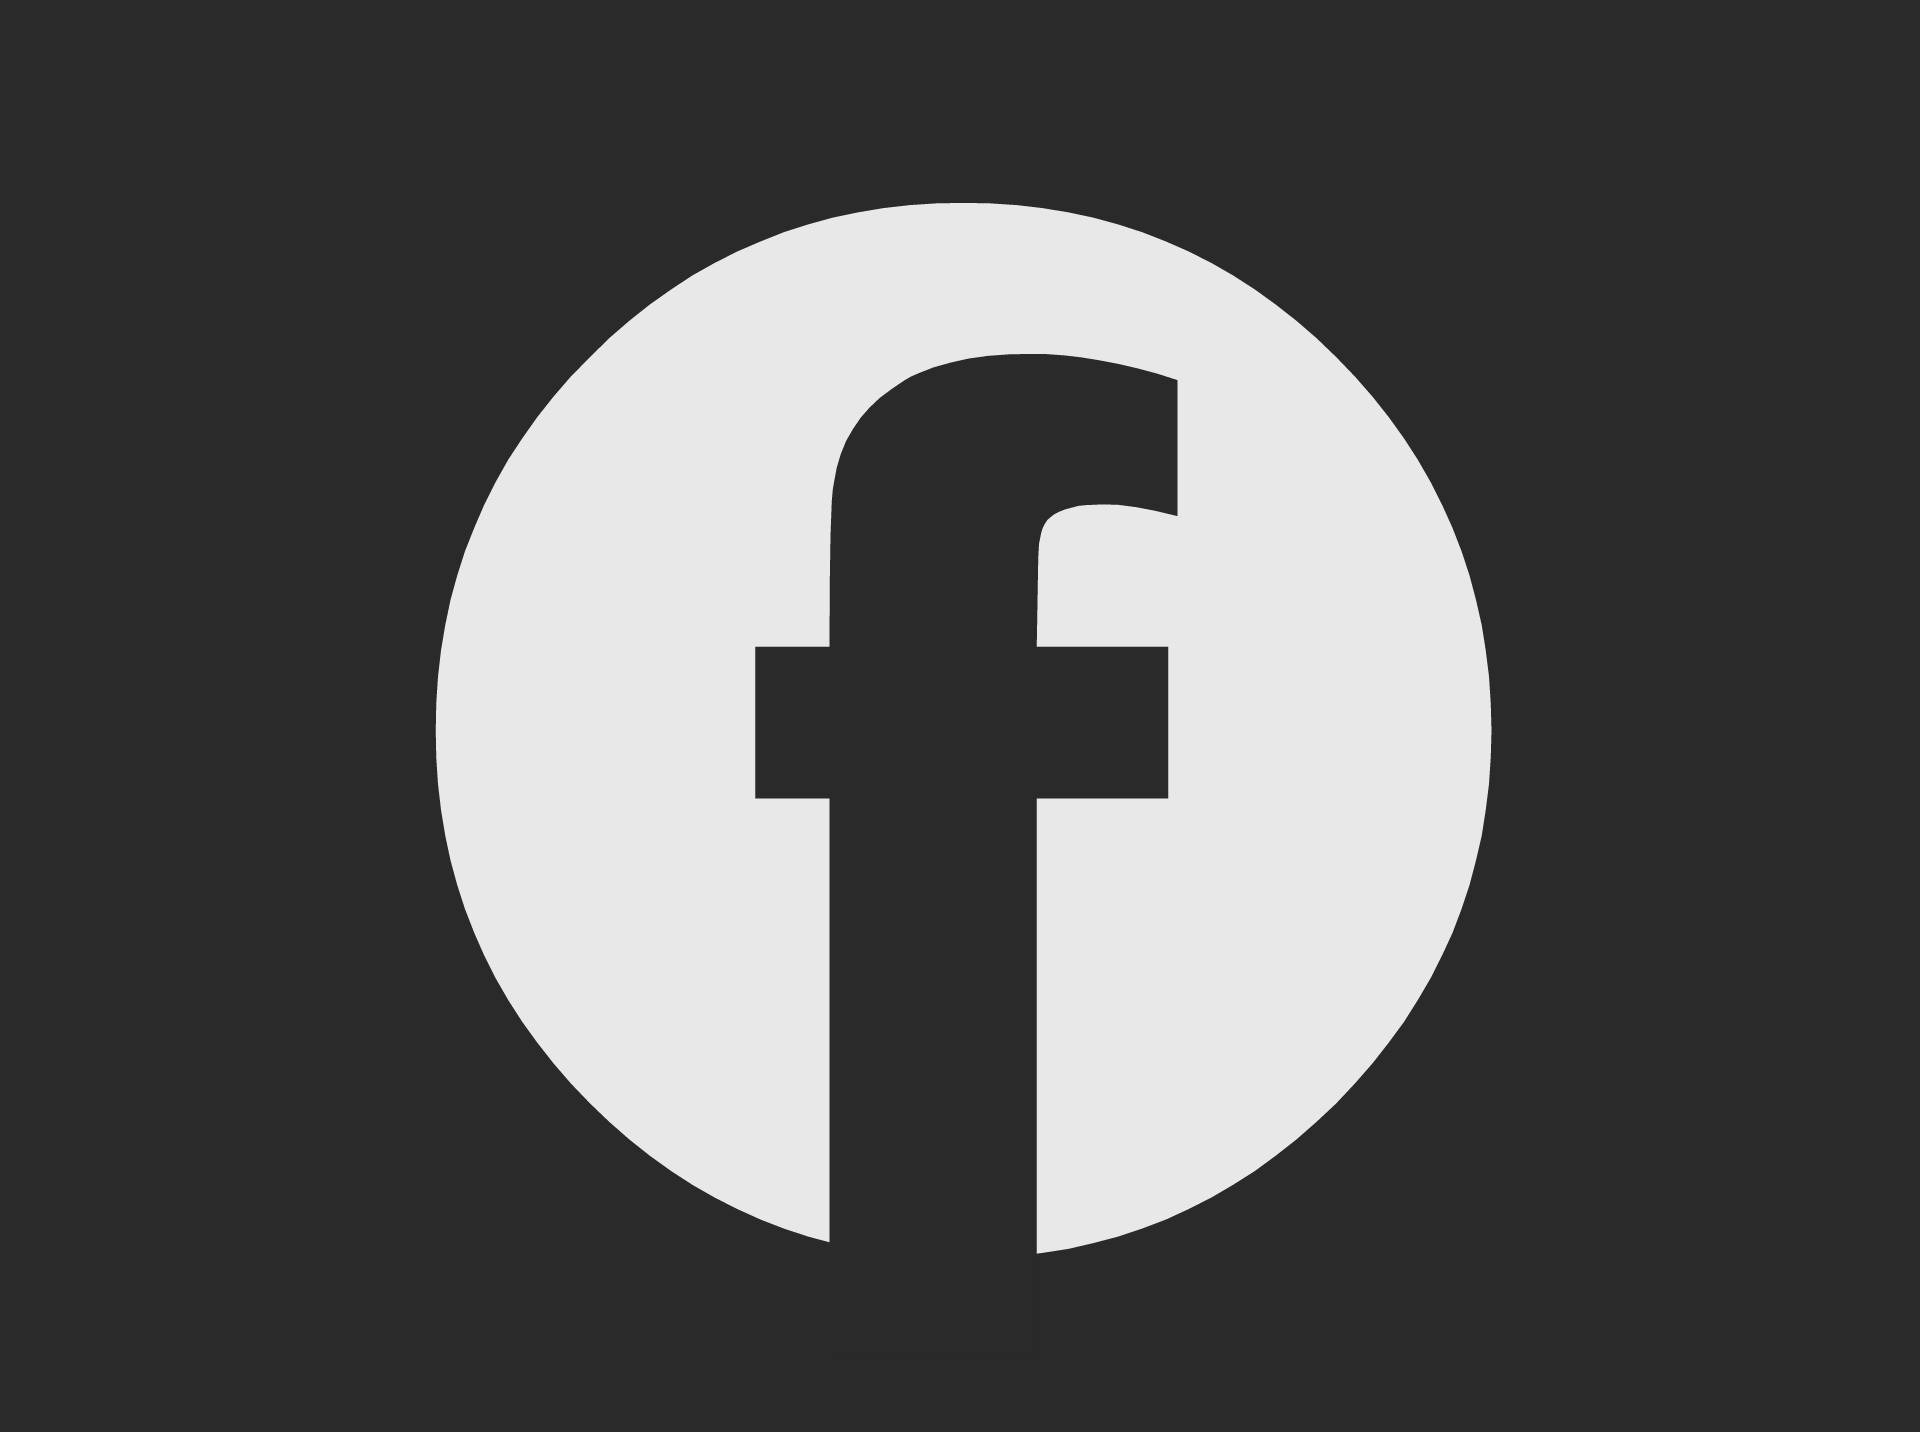 How To Turn On Facebook Dark Mode First Of All Thanks For Landing This Article If You Are Searching For To Apply Dark Mo Dark Mode Facebook Logo Dark Logo